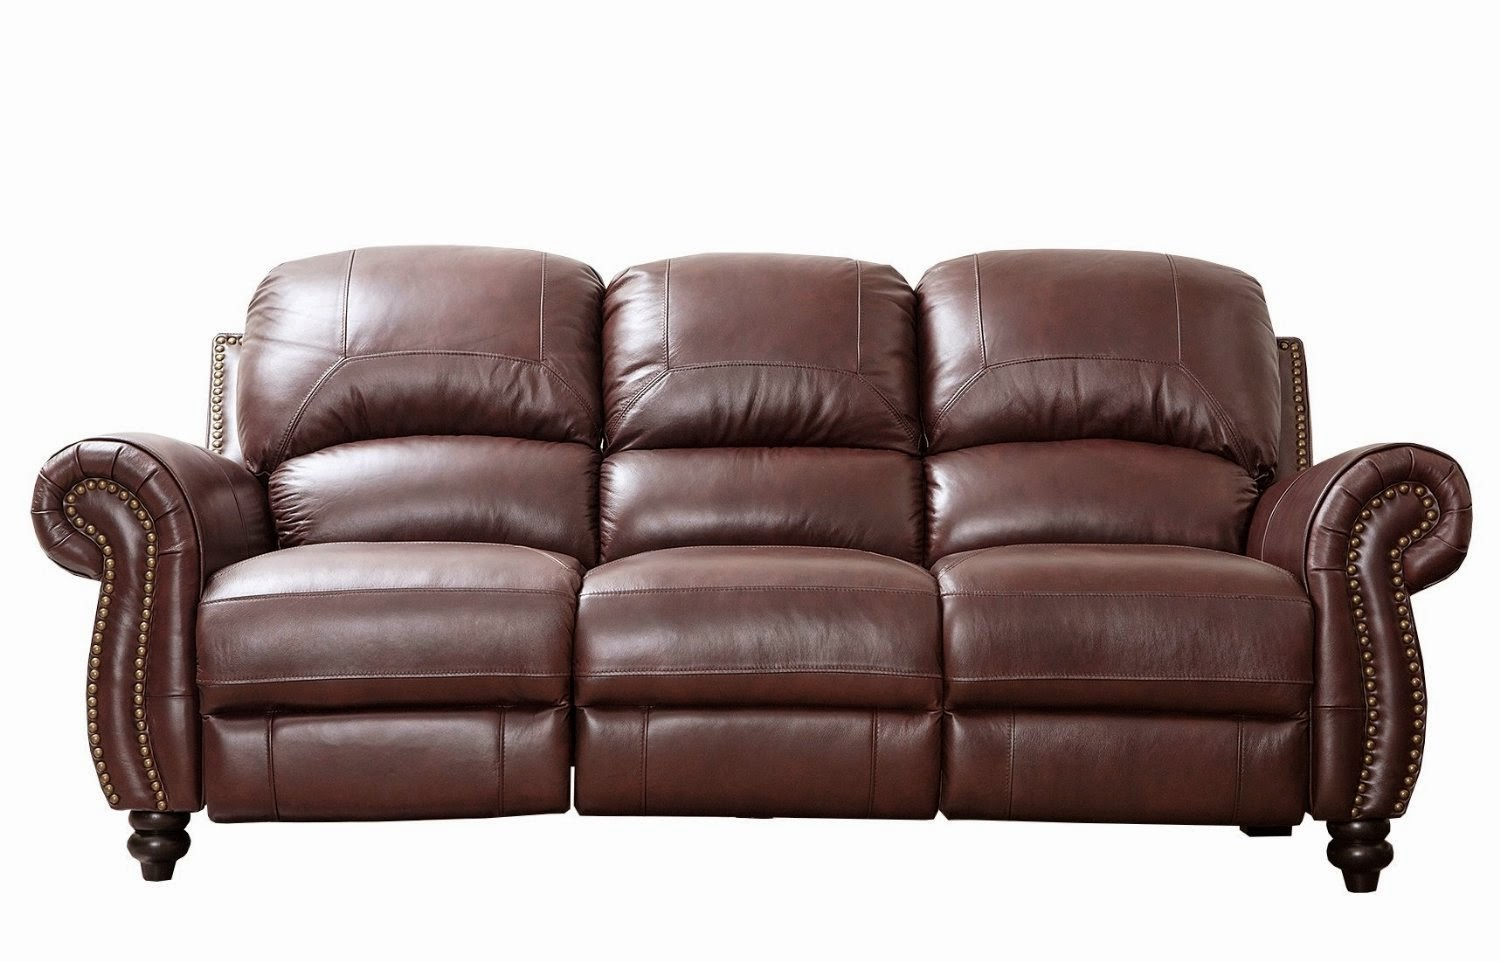 leather recliner sofa reviews reclining sofa and loveseat modern leather recliner sofa sofa recliner leather sale